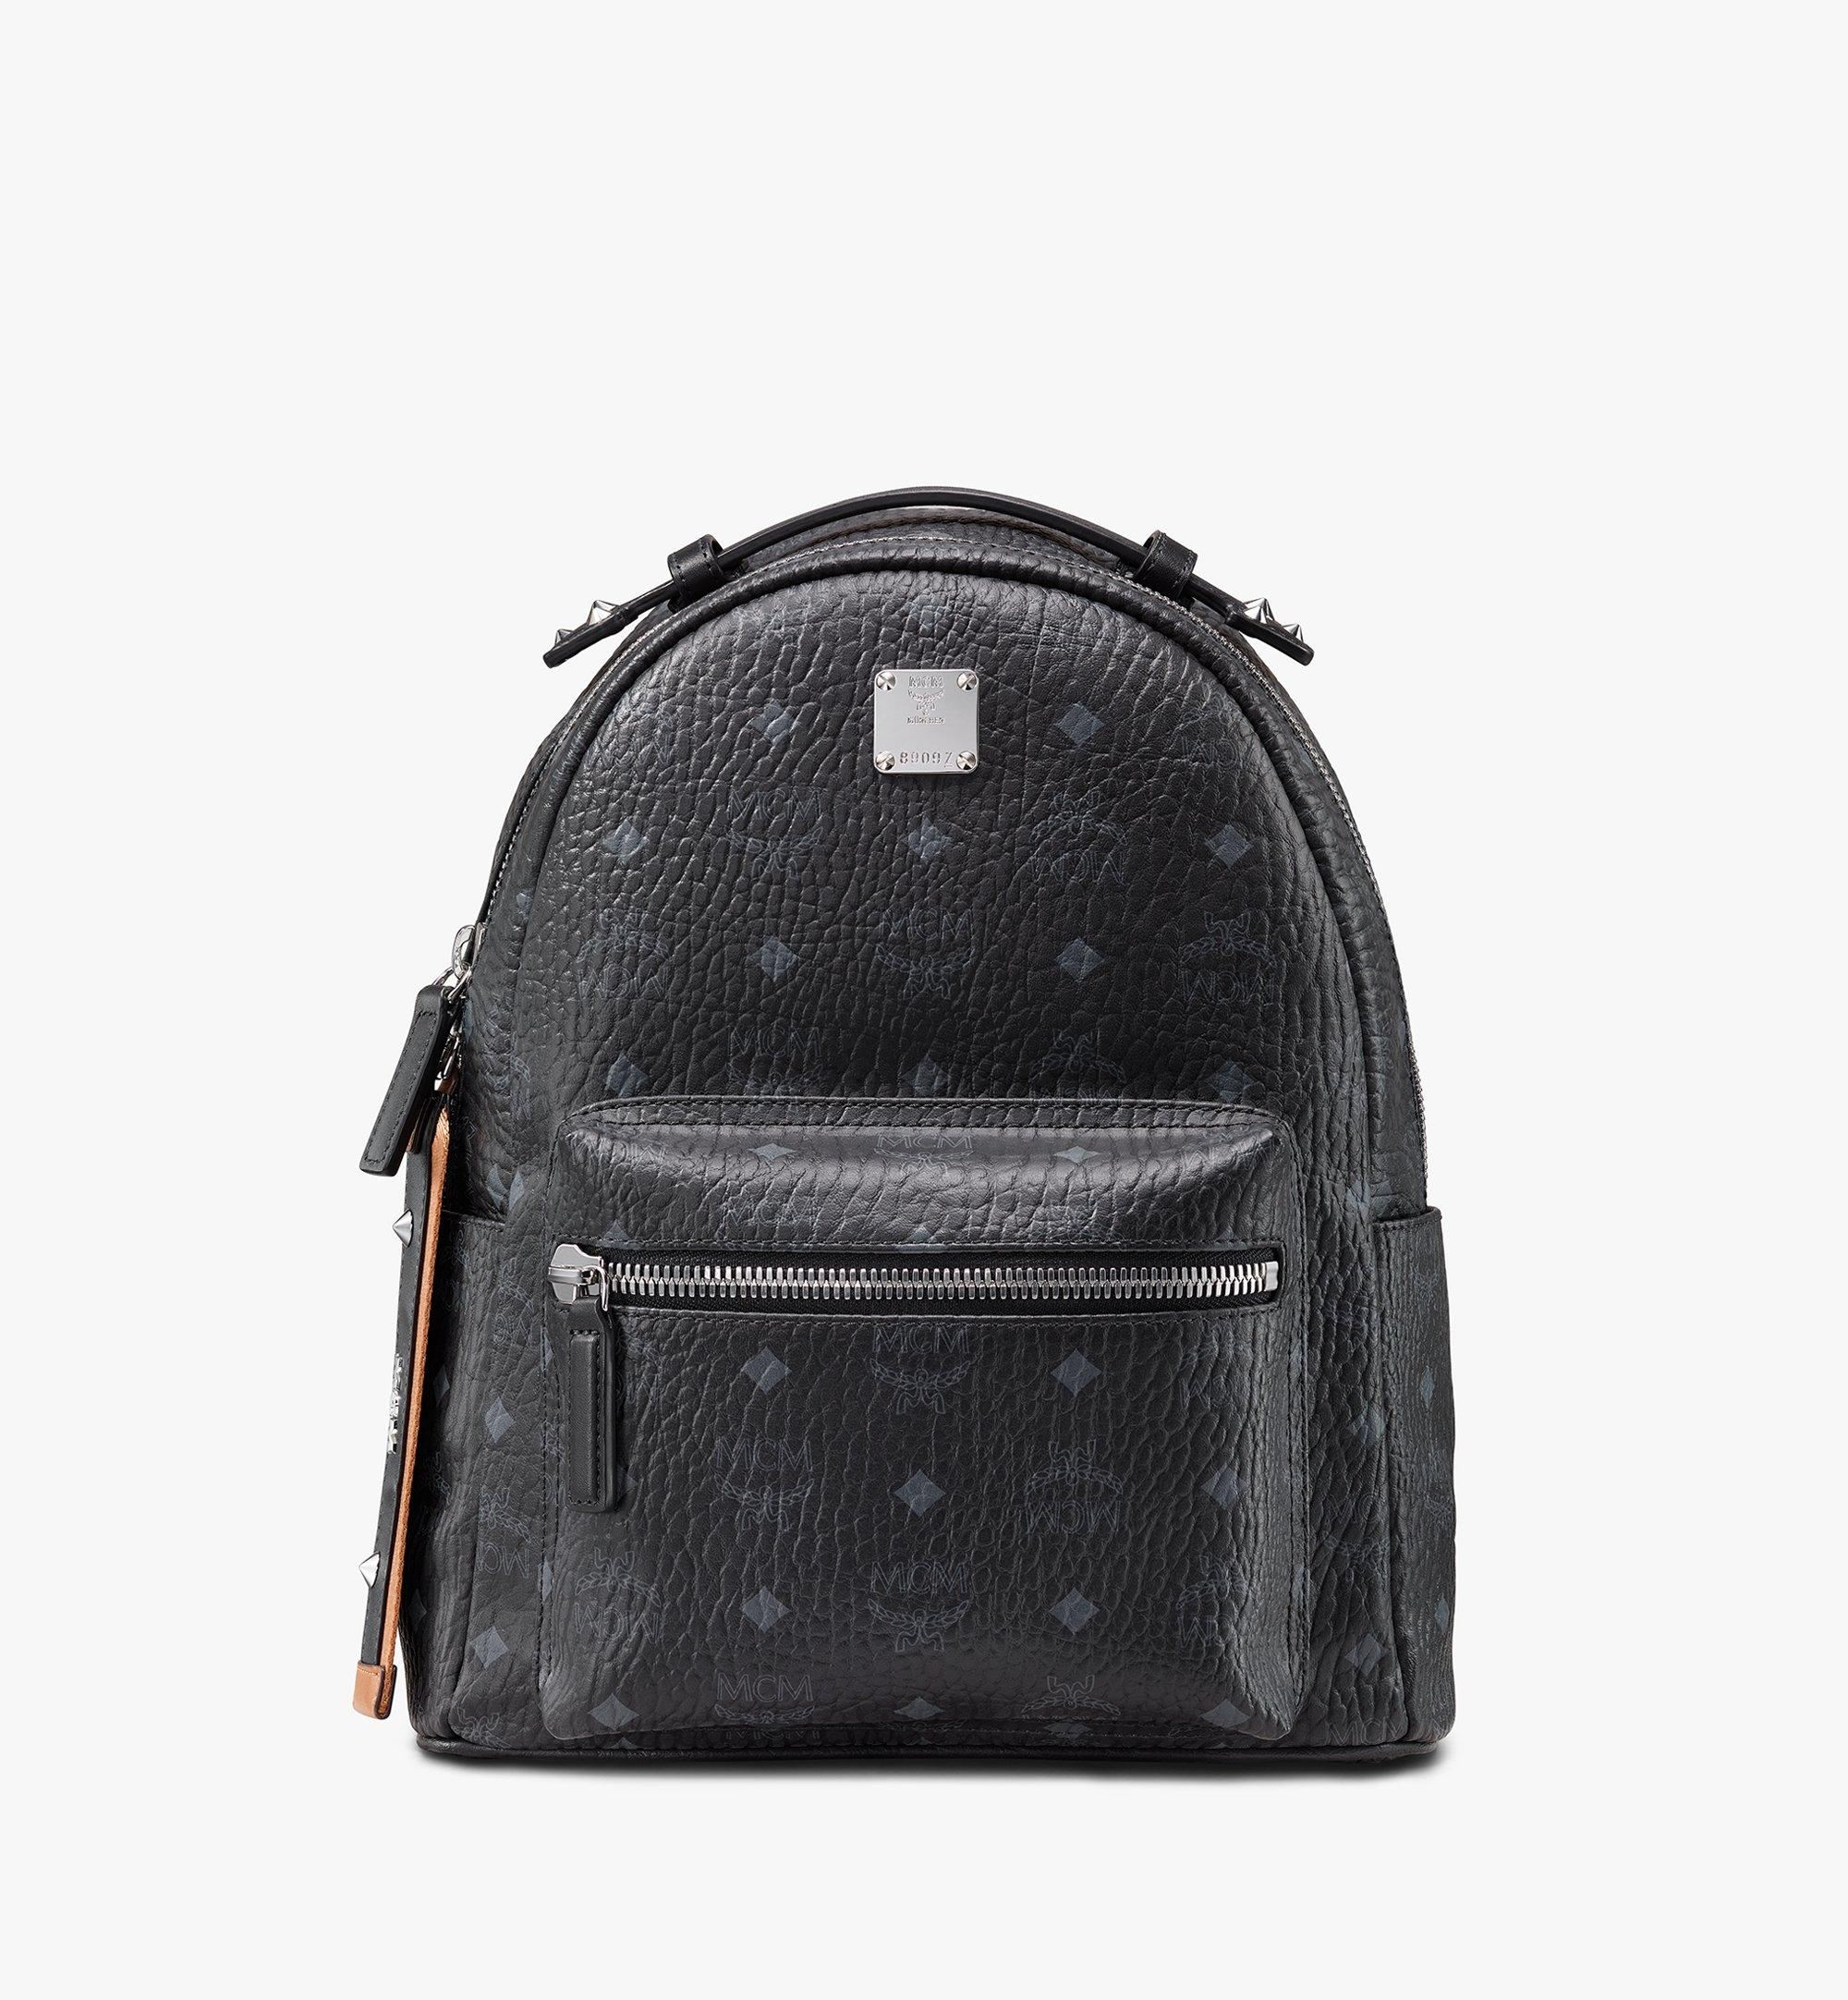 MCM Stark Backpack in Visetos Black MMKASVE26BK001 Alternate View 1